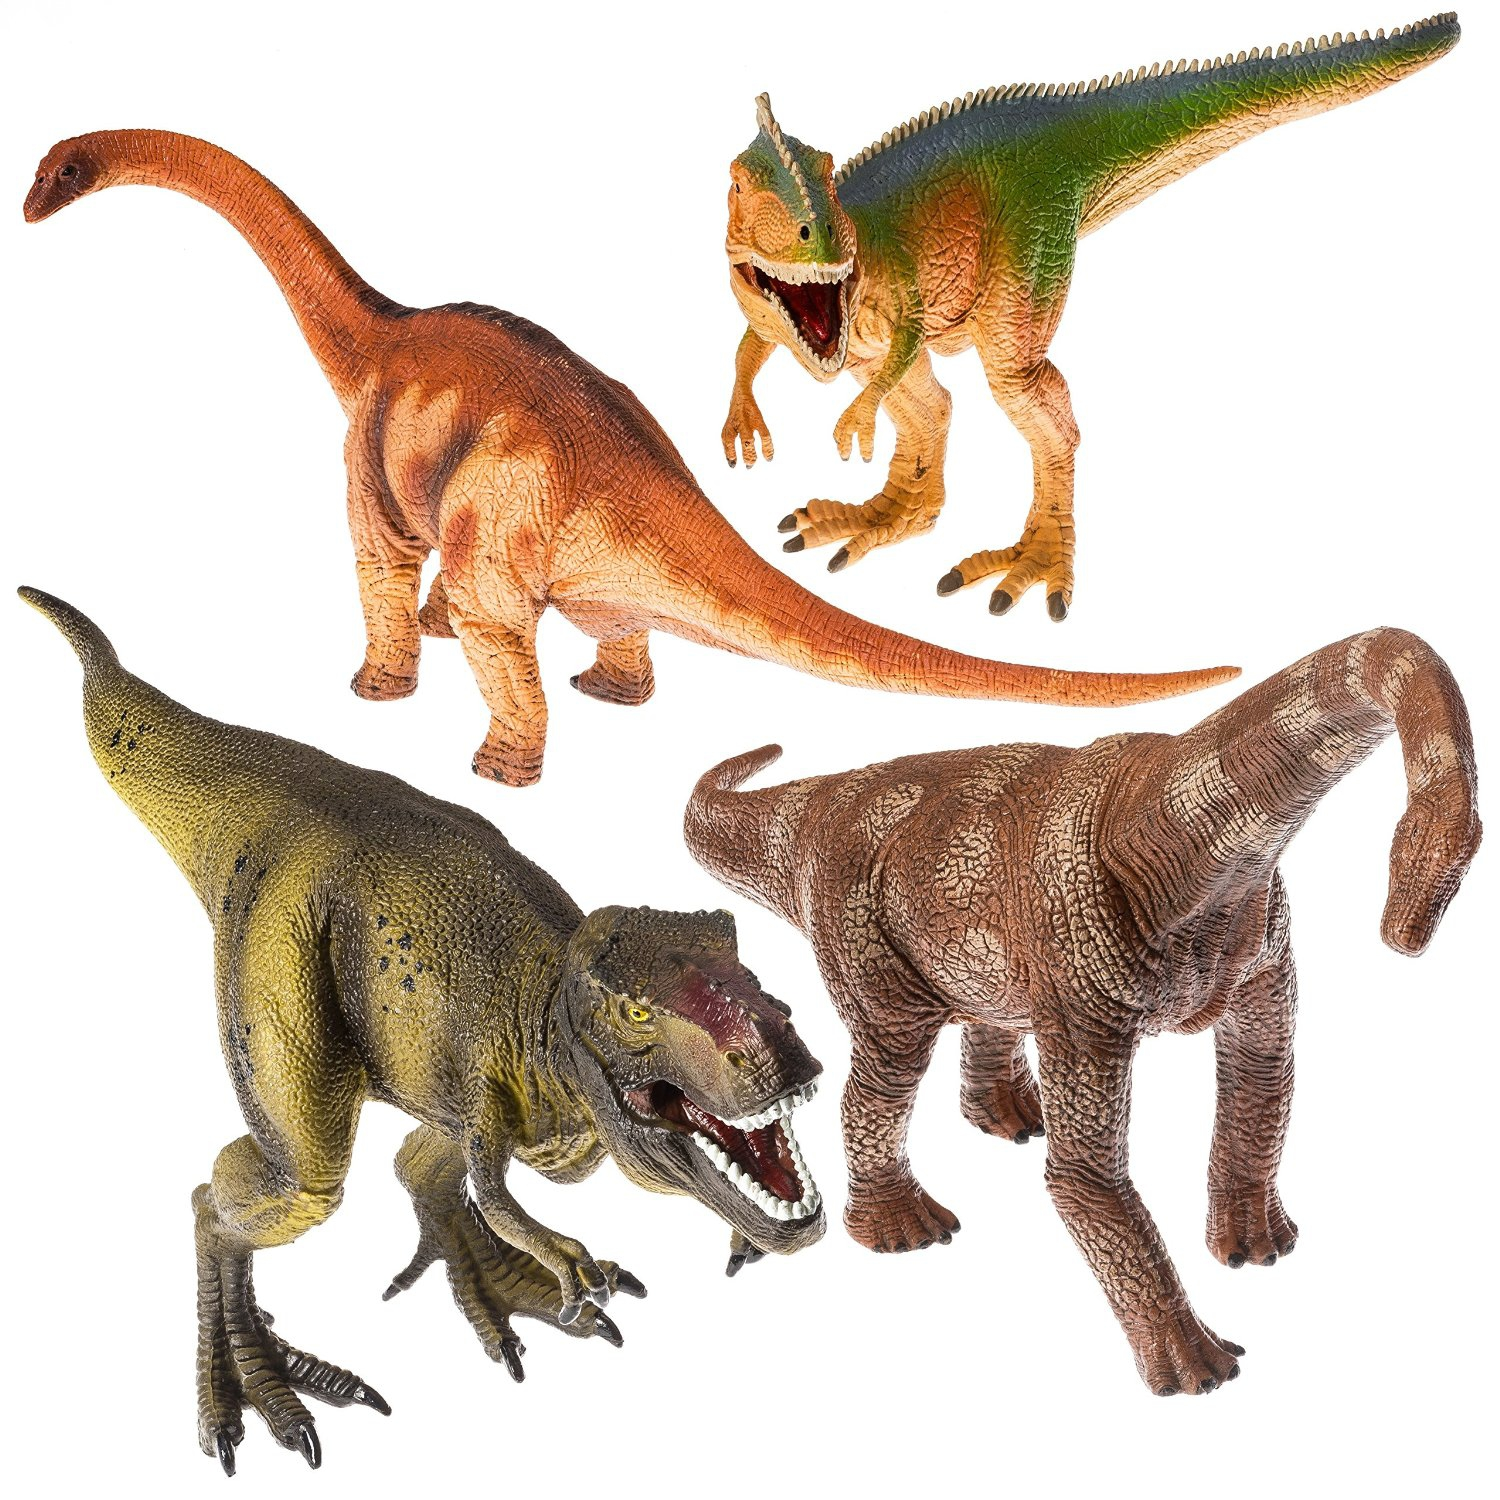 Prextex 13� Realistic Looking Dinosaurs Pack of 4 Jumbo Plastic Assorted Dinosaur Figures by